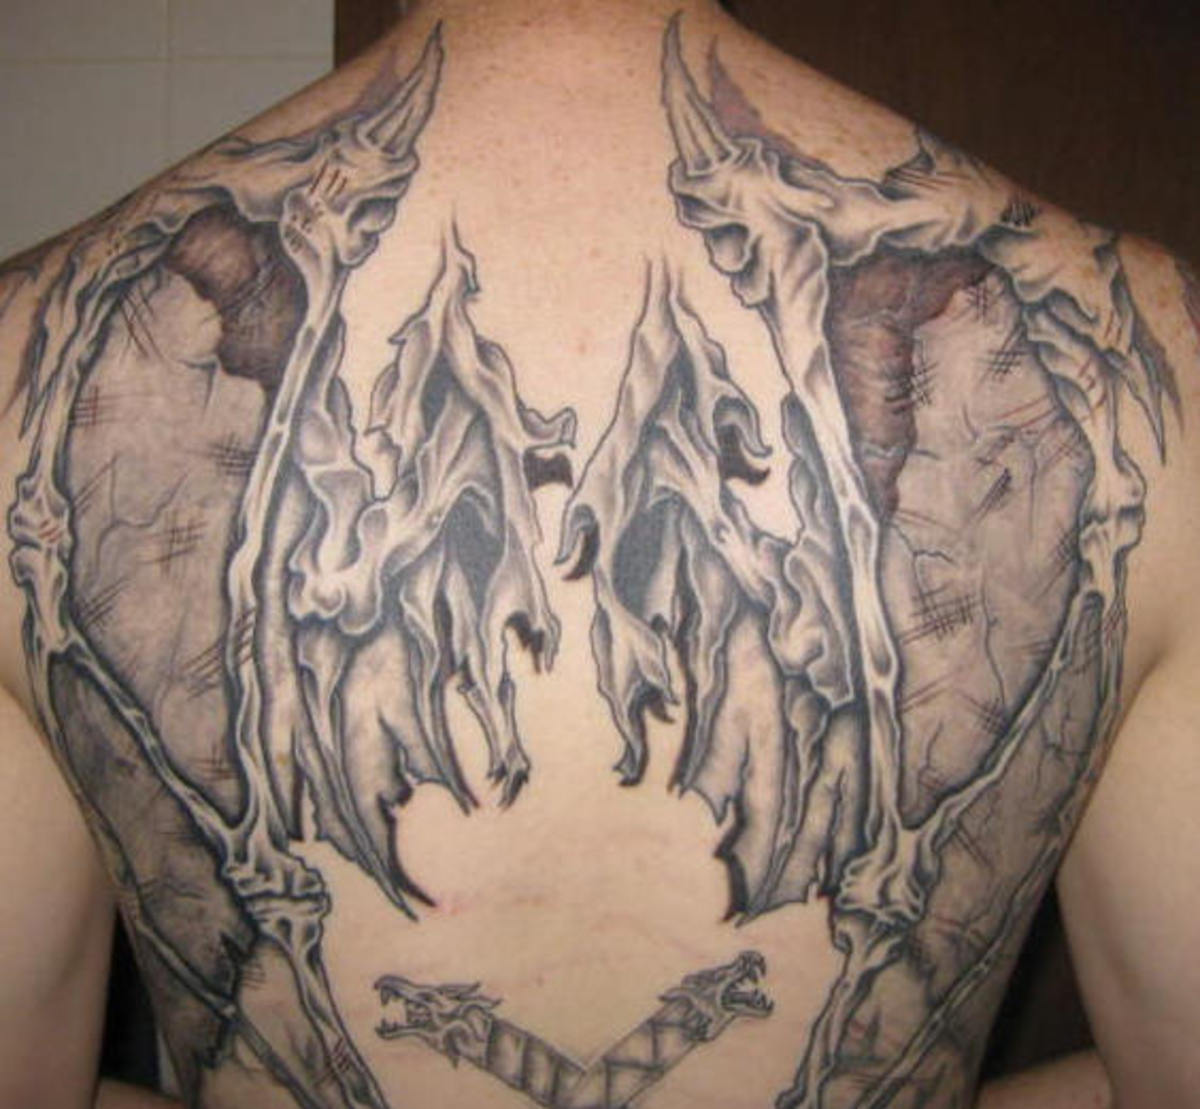 Tattoo Woman Demonic: Gothic Tattoos With Wing Designs